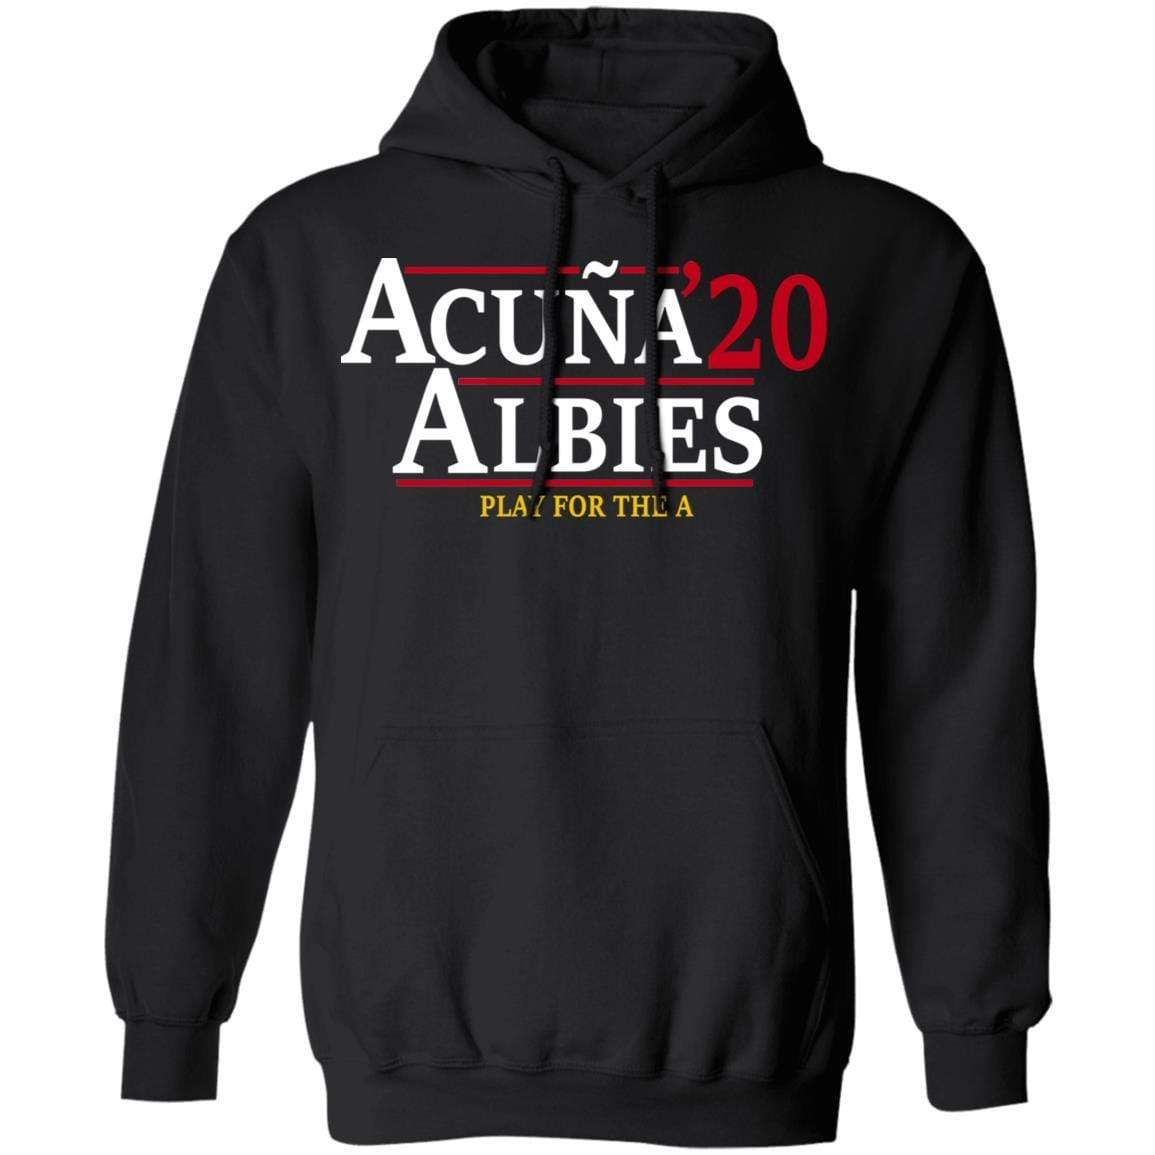 Acuna Albies 2020 Play For The A T-Shirts, Hoodies 541-4740-88478047-23087 - Tee Ript